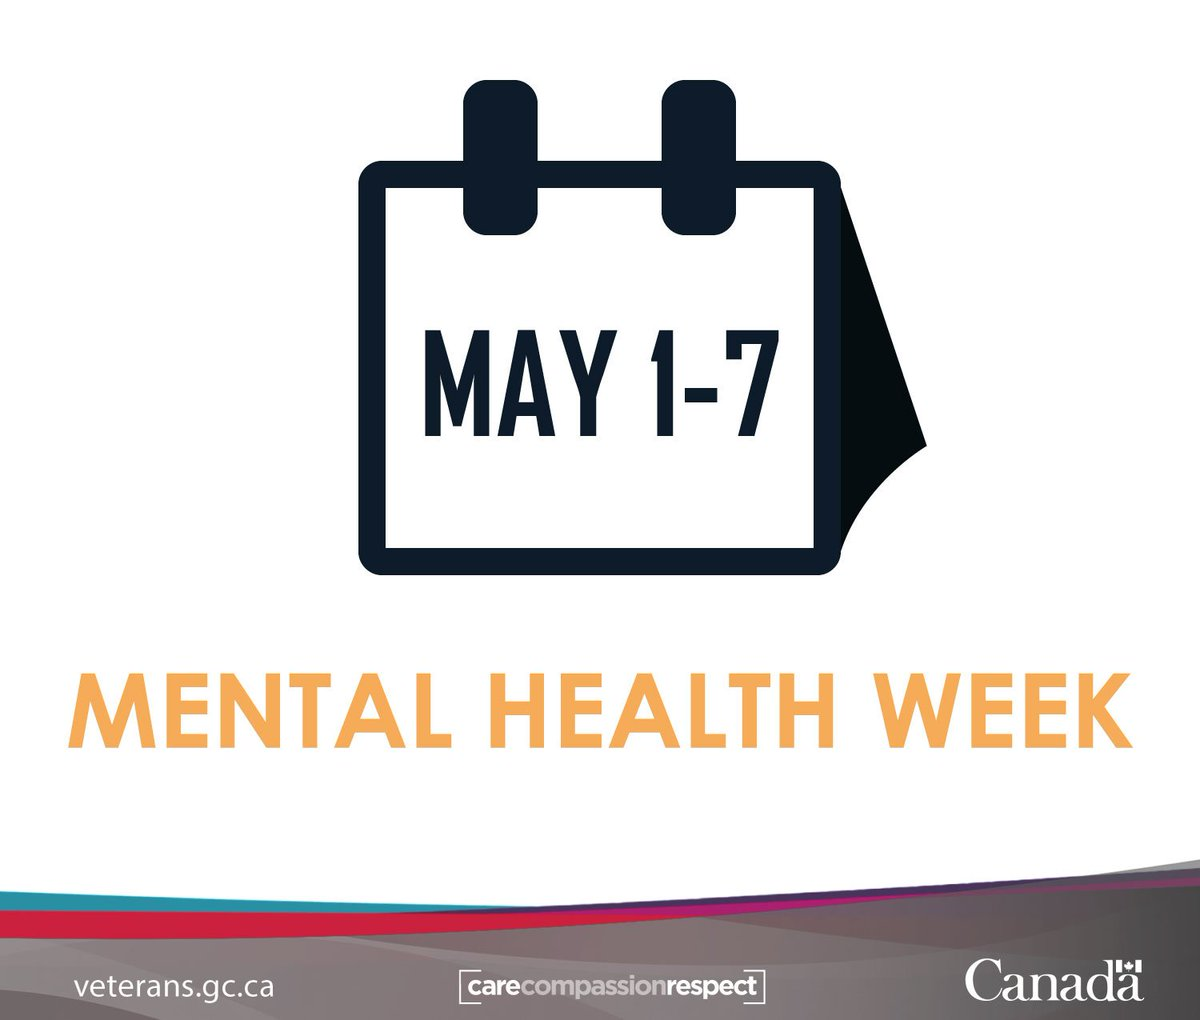 Veterans Affairs Ca On Twitter Mental Health Week Is May 1 7